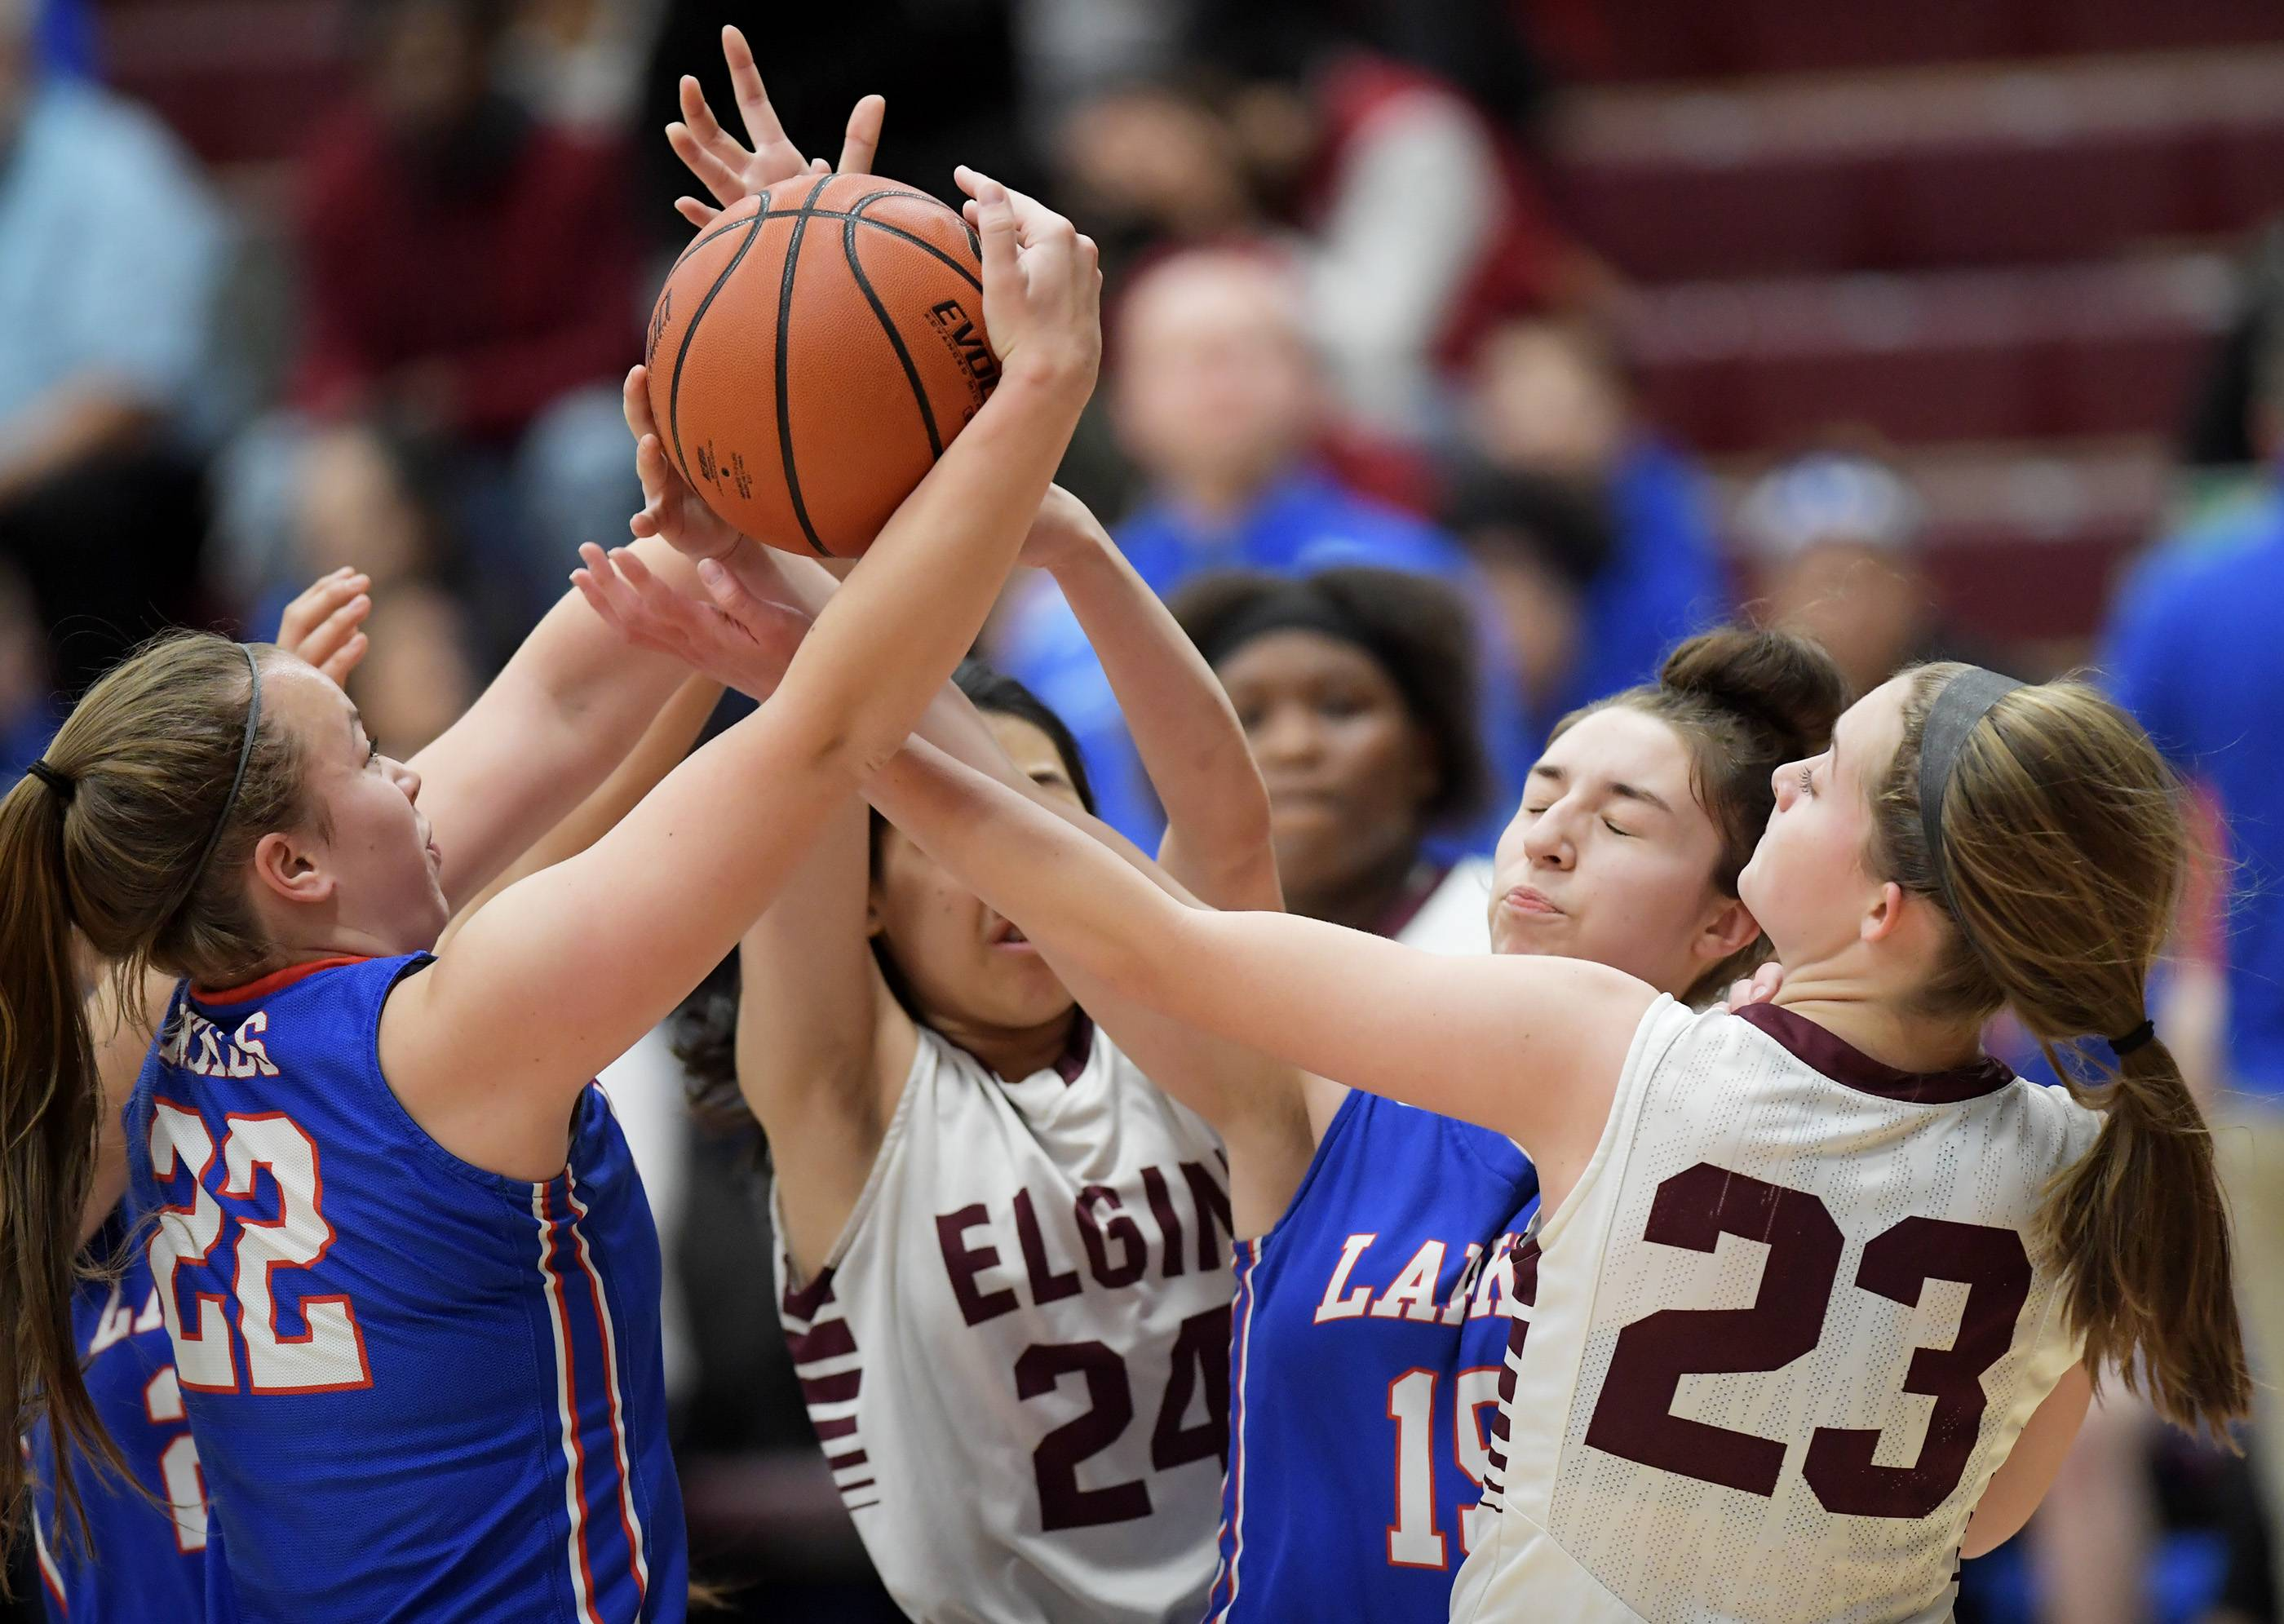 Larkin's Hailey Buttrum and Alexia Saldivar battle for a rebound with Elgin's Sabrina Chen and Kylie Graves Tuesday at Chesbrough Field House at Elgin High School.